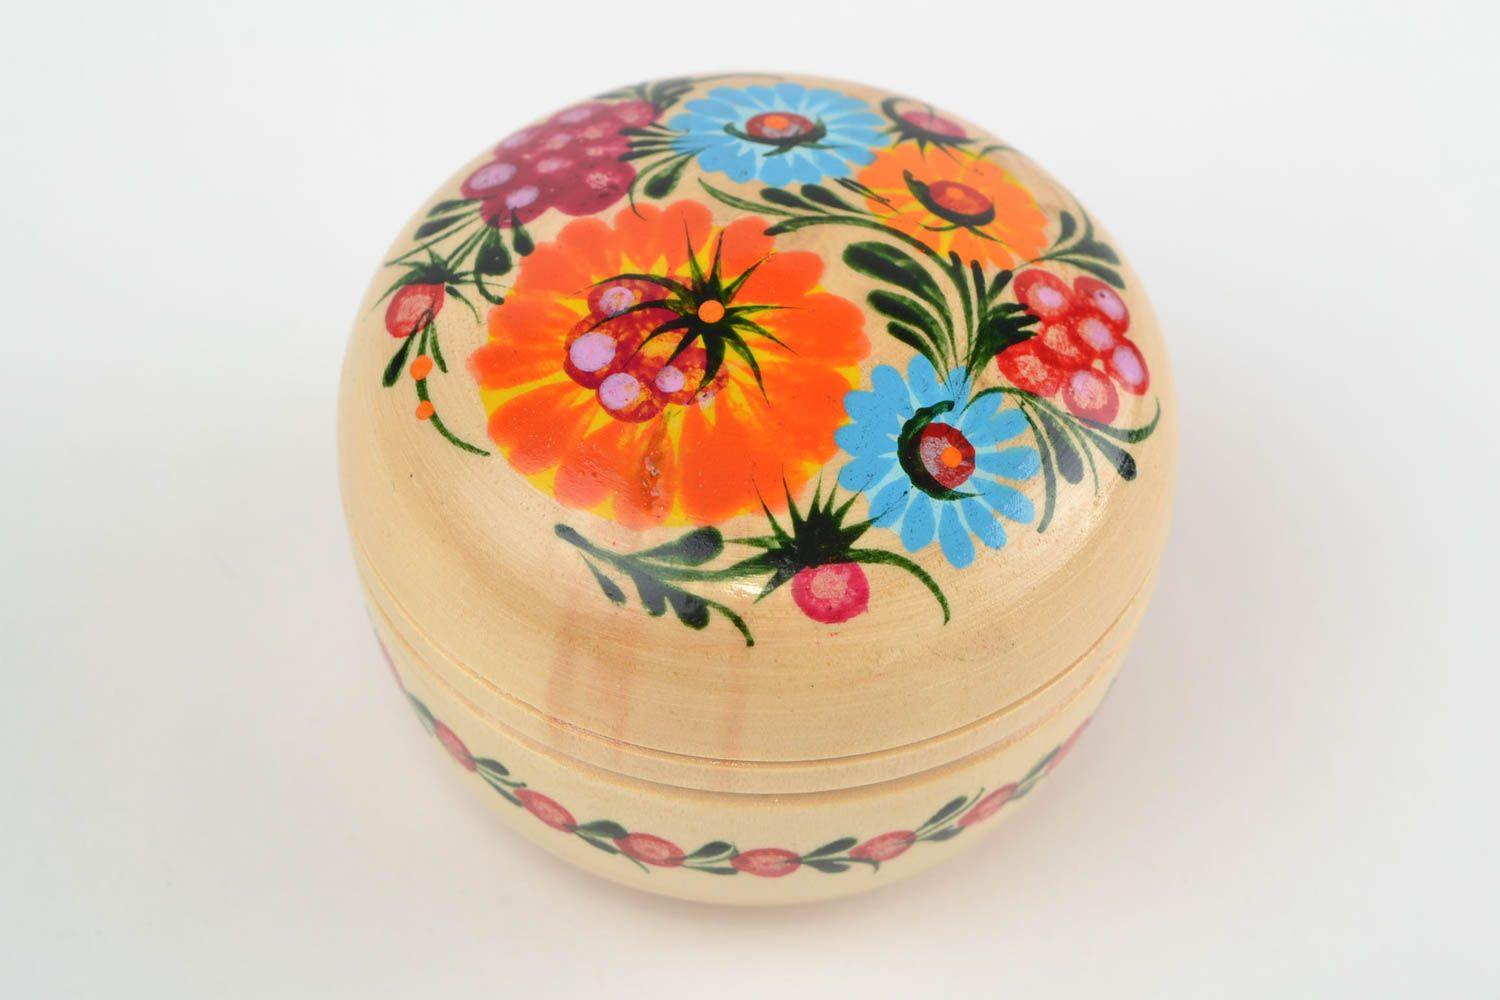 Bo Handmade Wooden Jewelry Box Painted For Home Decor Ideas Madeheart